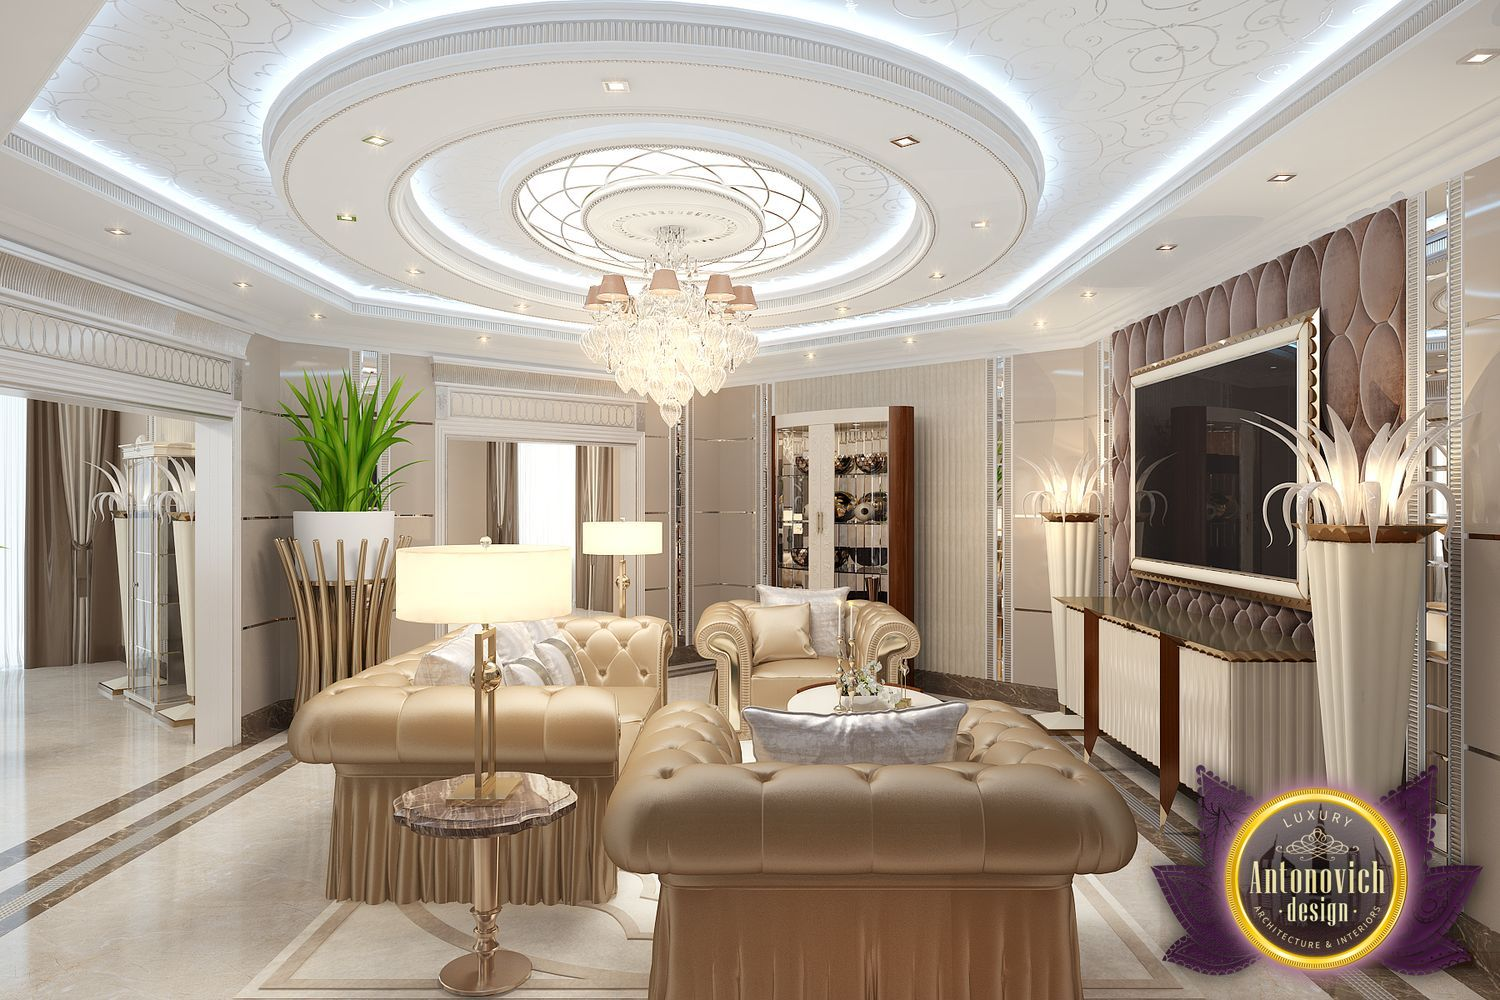 Luxury Interior Designs: Kenyadesign: Living Room Decoration Ideas By Luxury